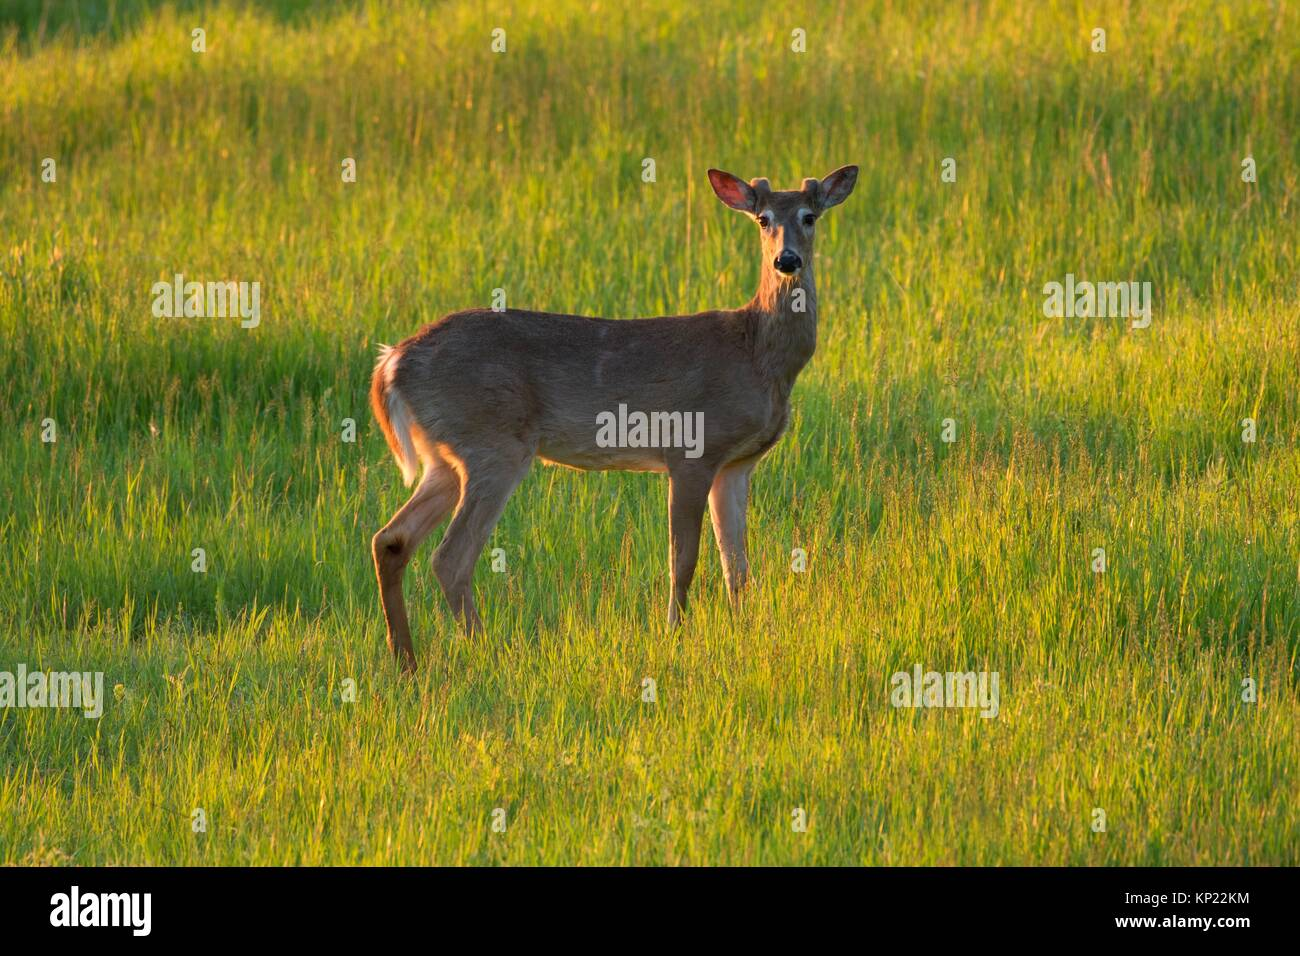 White-tailed deer (Odocoileus virginianus), Kootenai National Wildlife Refuge, Idaho. - Stock Image